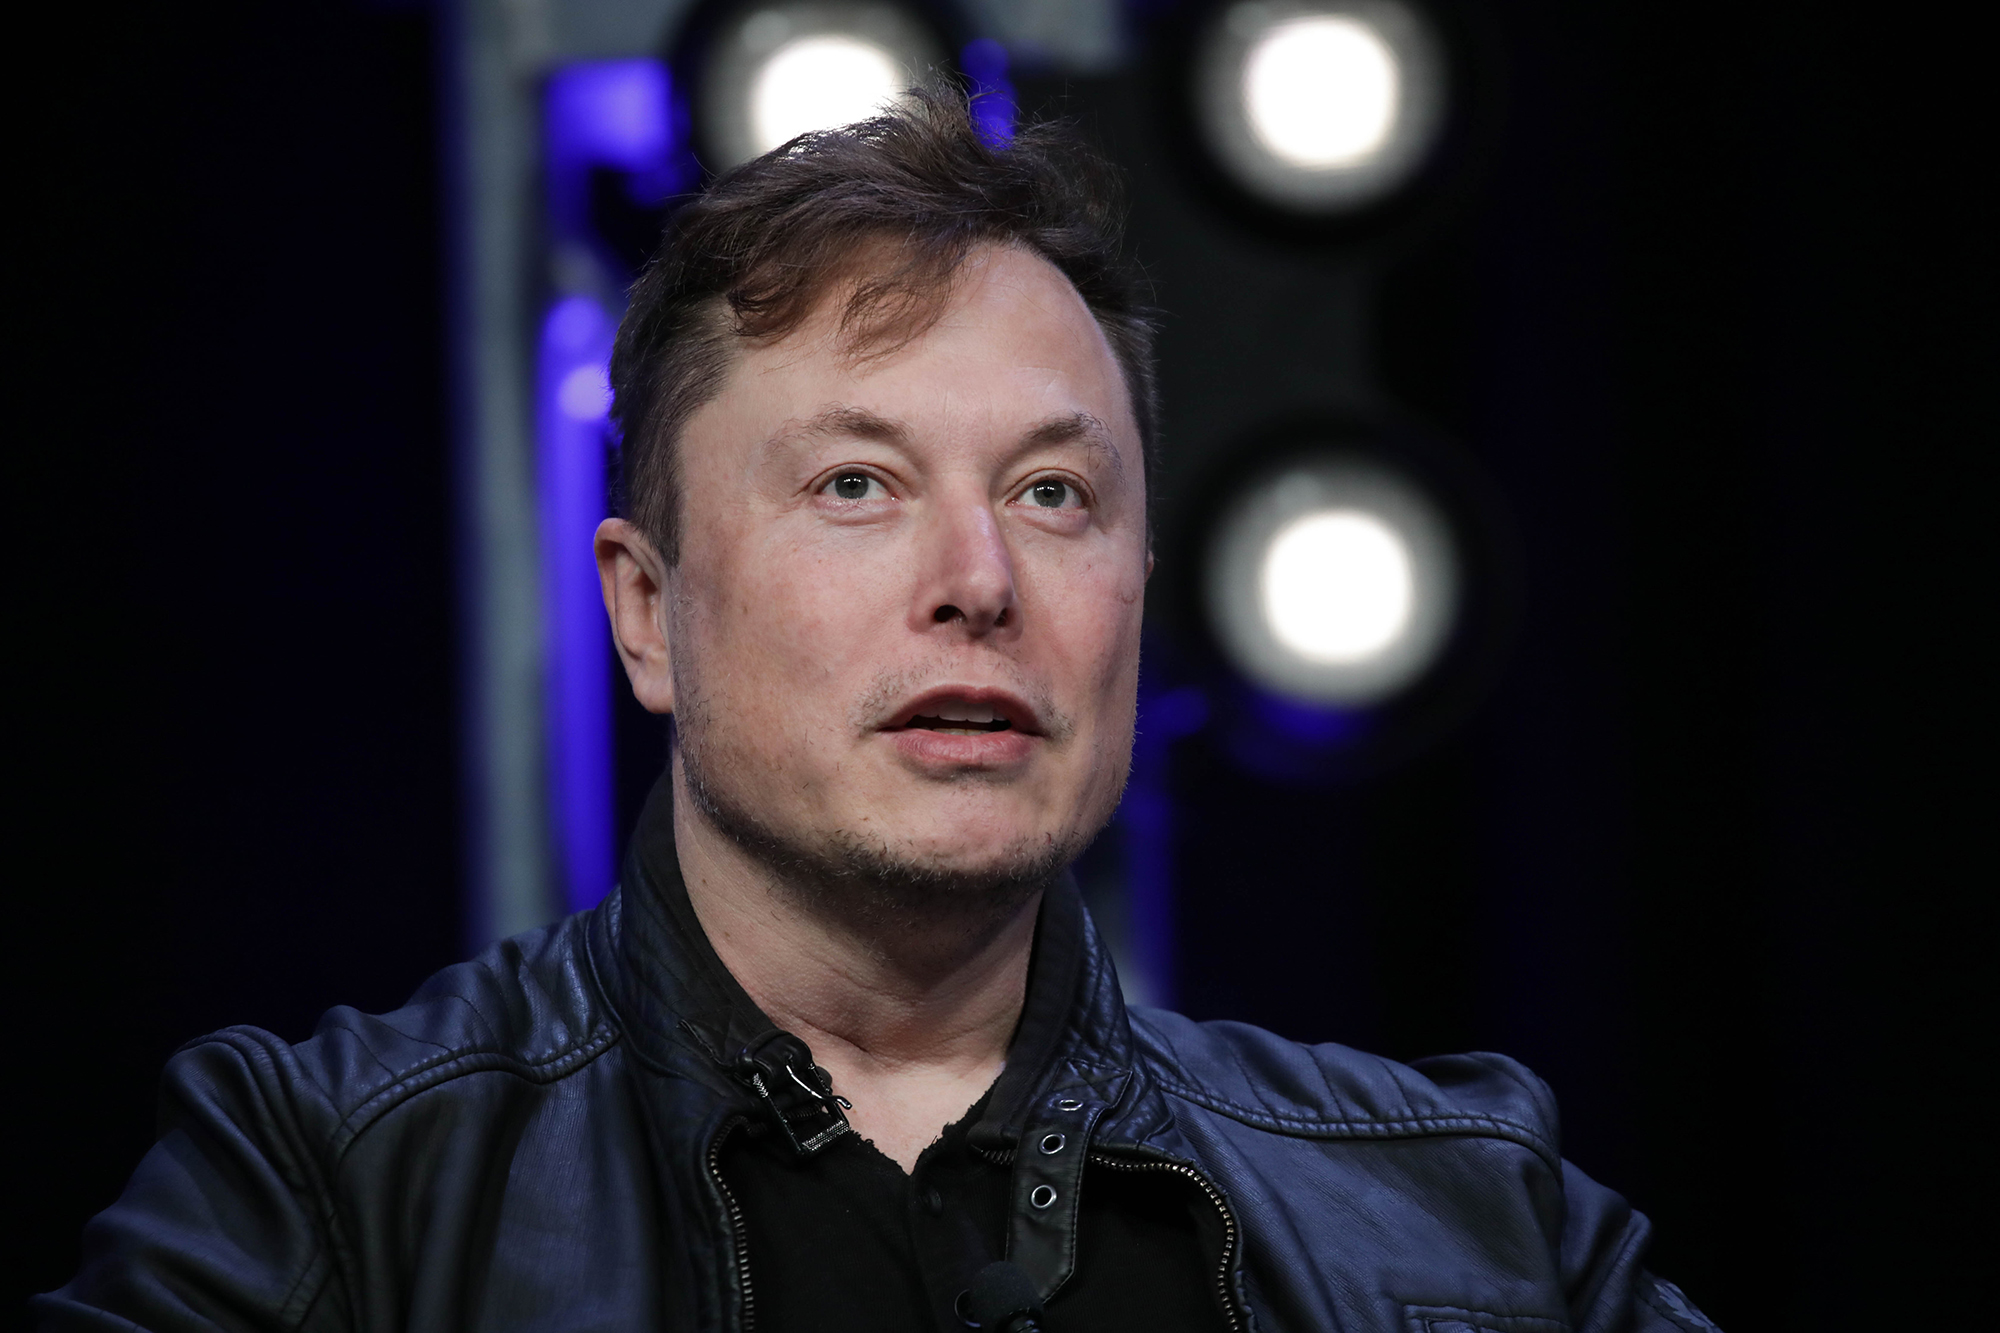 Elon Musk Tweeted He Took 4 Covid Tests In One Day But Half Were Positive And Half Were Negative Abc7 Los Angeles